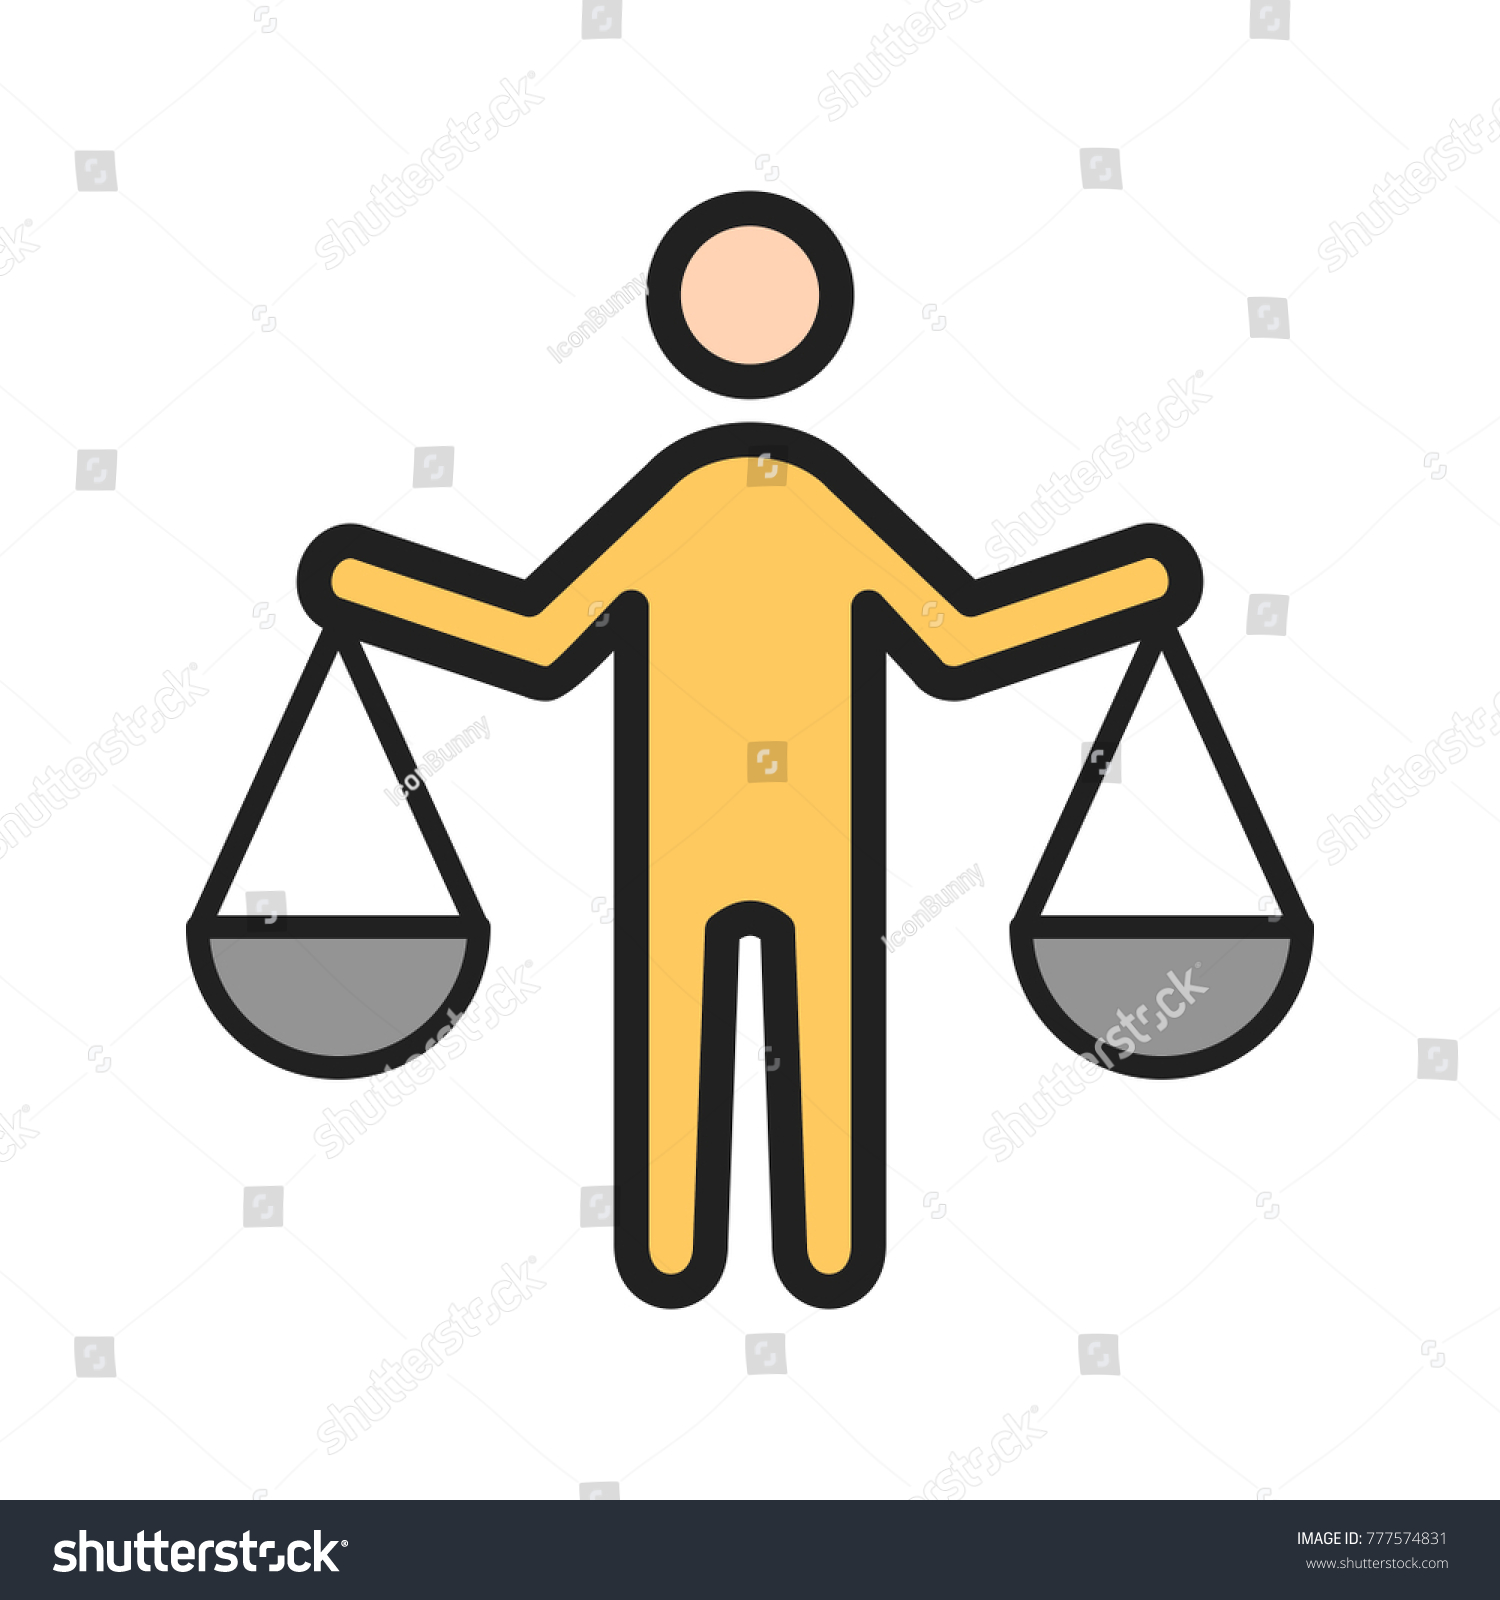 Integrity ethics principles stock vector 777574831 shutterstock integrity ethics principles biocorpaavc Image collections